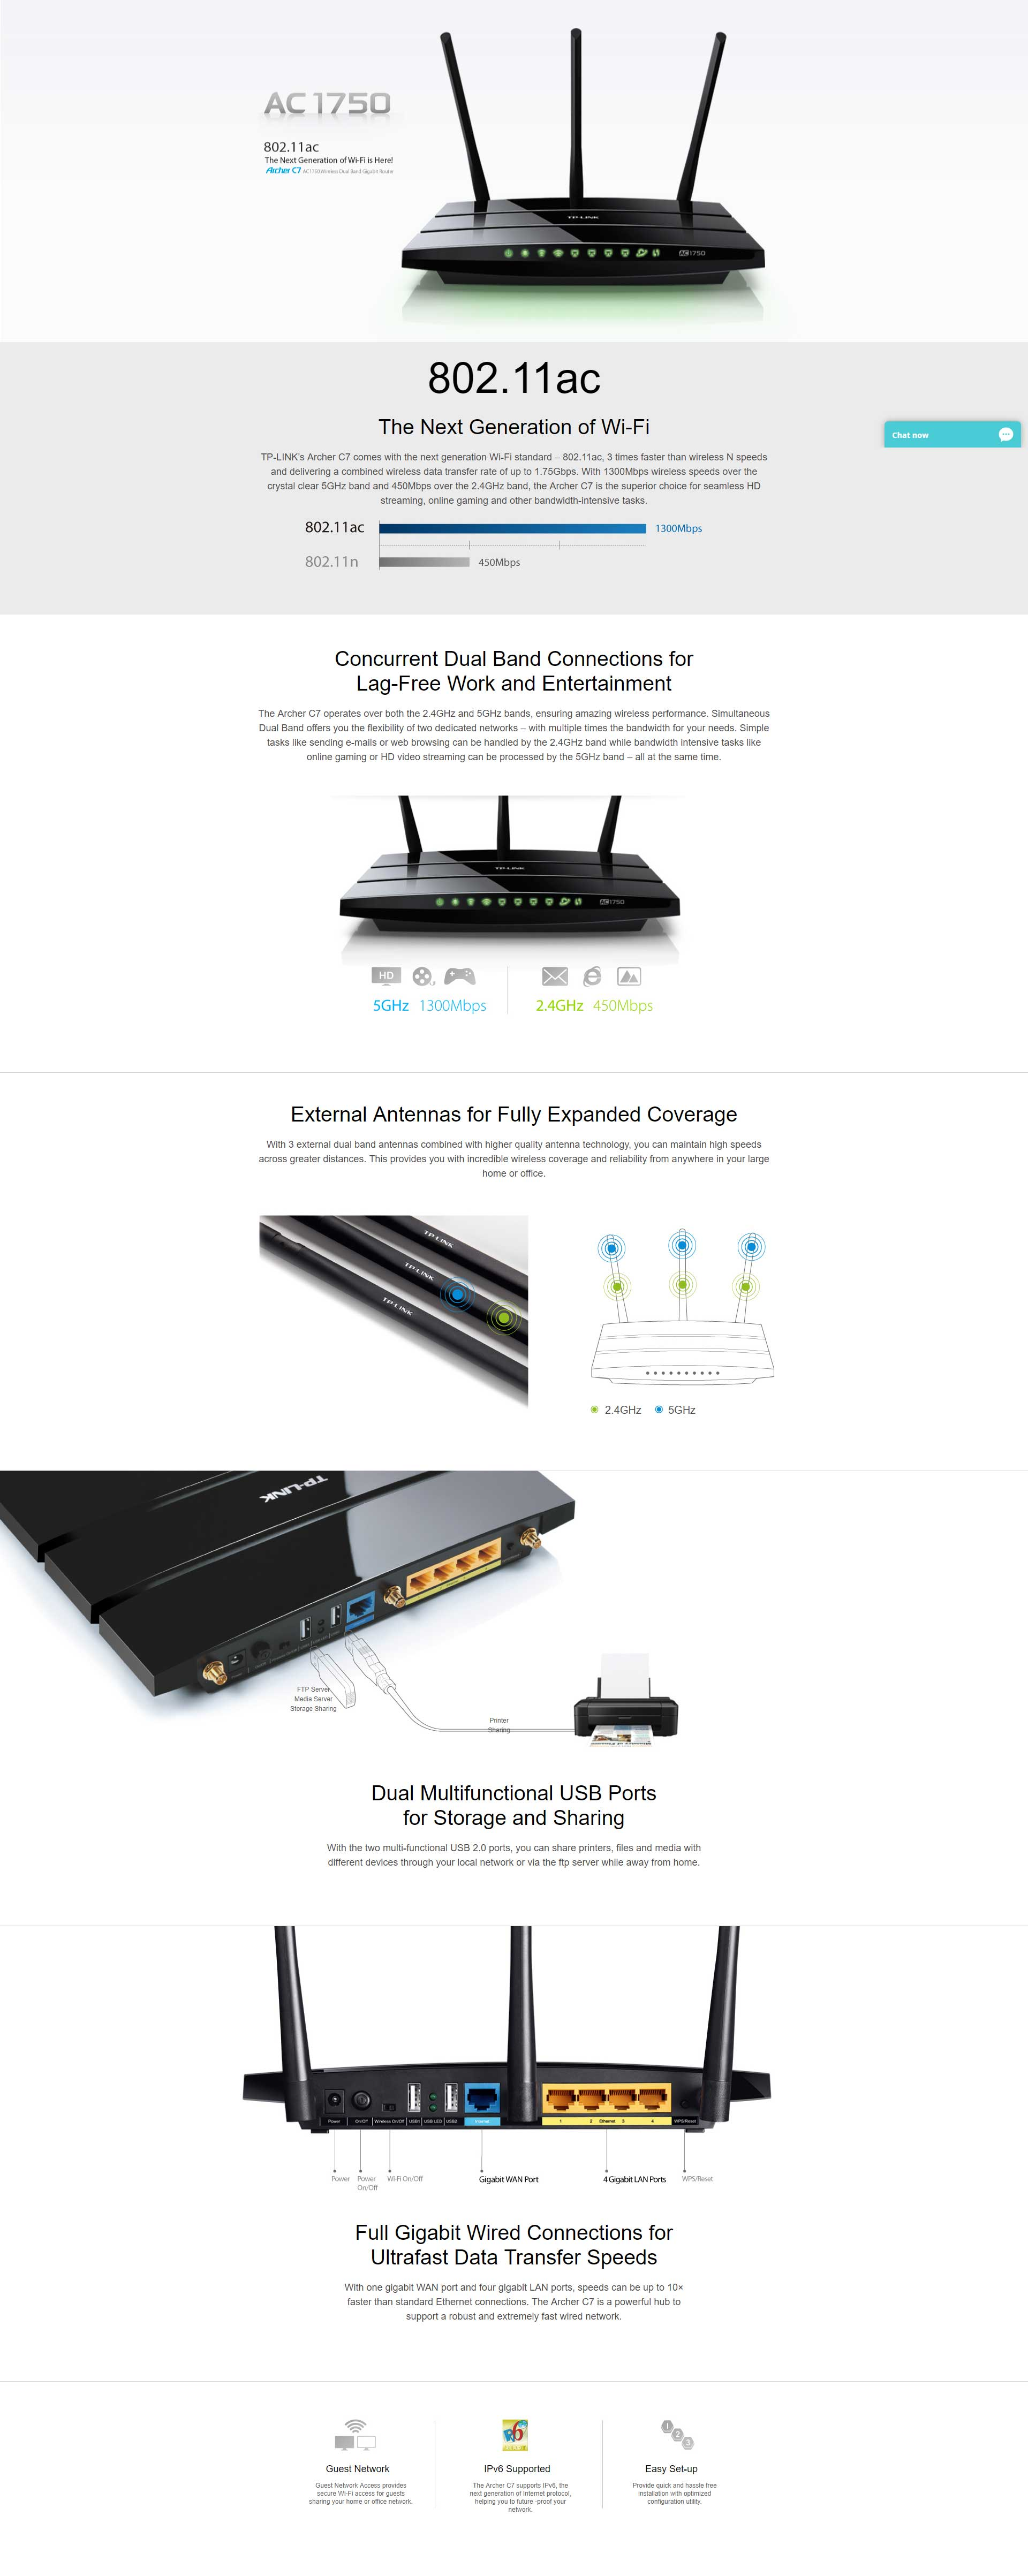 TP-Link Network ARCHER C7 Wireless Dual Band Gigabit Router 2 4GHz 5GHz USB  Retail